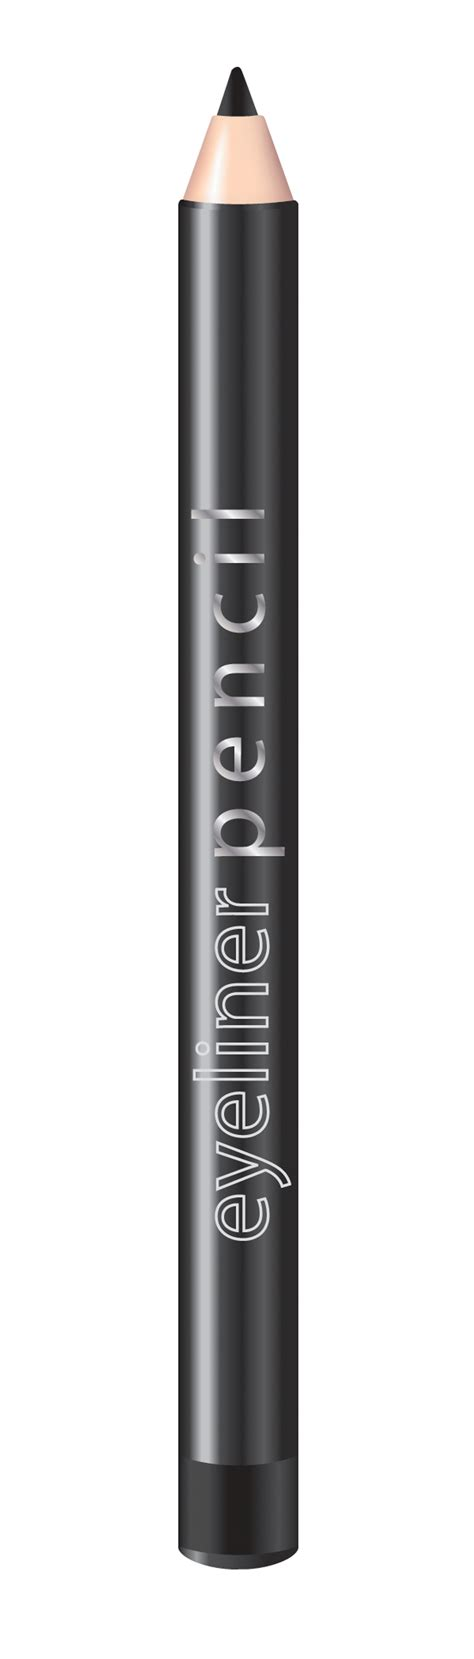 La Tulipe Eyeliner Pencil Black Latulipe Eye Liner Pensil Toko Tes 081555766016 upc la colors black eyeliner pencil upc lookup